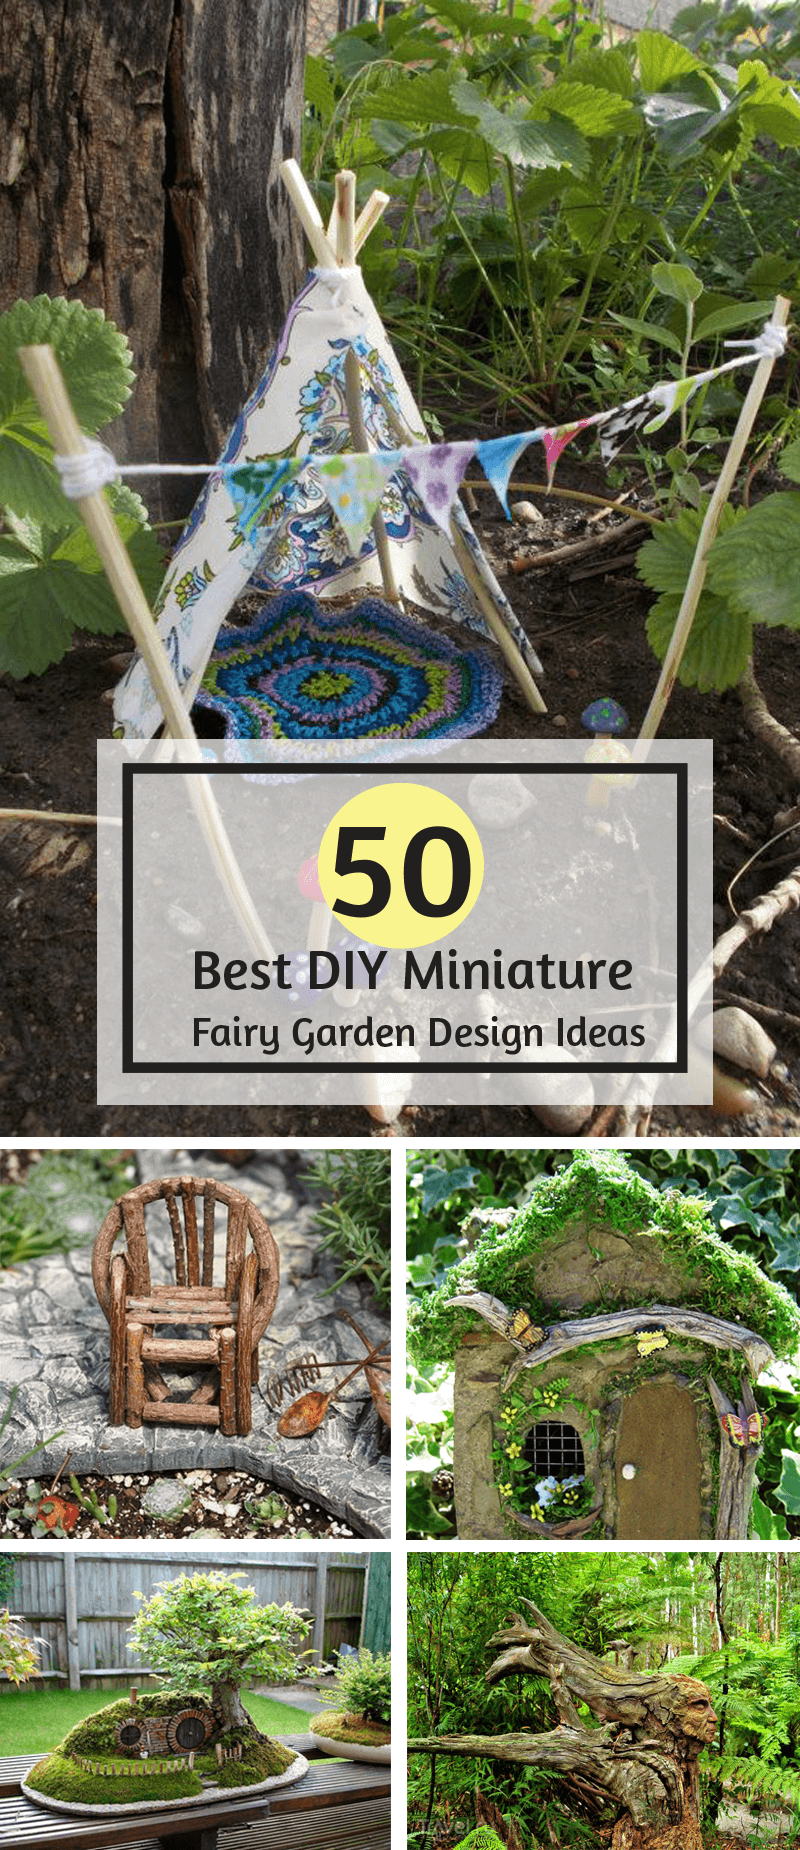 DIY Miniature Fairy Garden Design Ideas